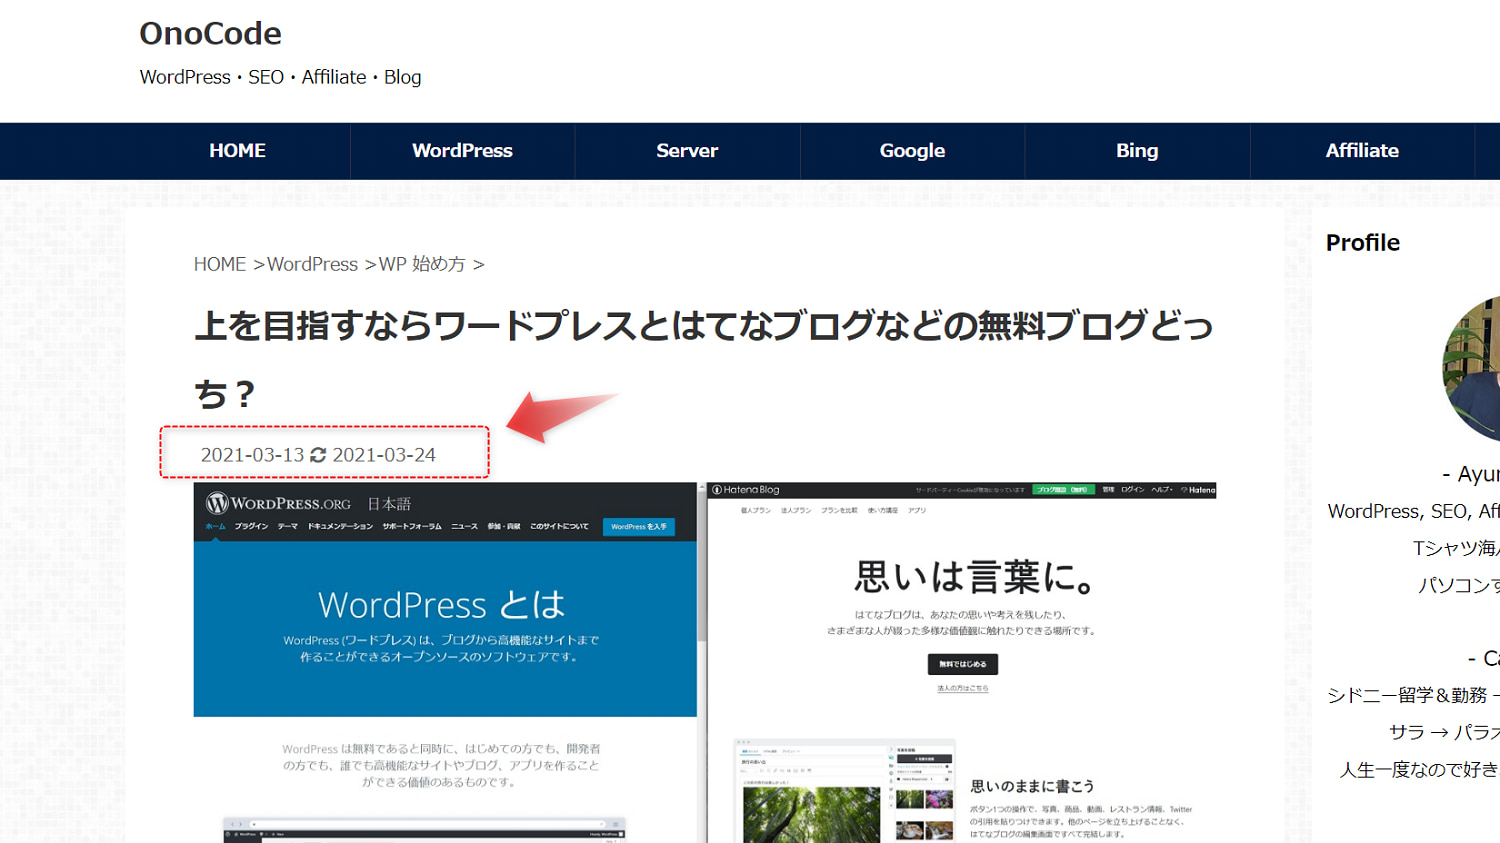 AFFINGER5 投稿記事一覧は投稿日、各記事には投稿日と更新日を表示させる方法